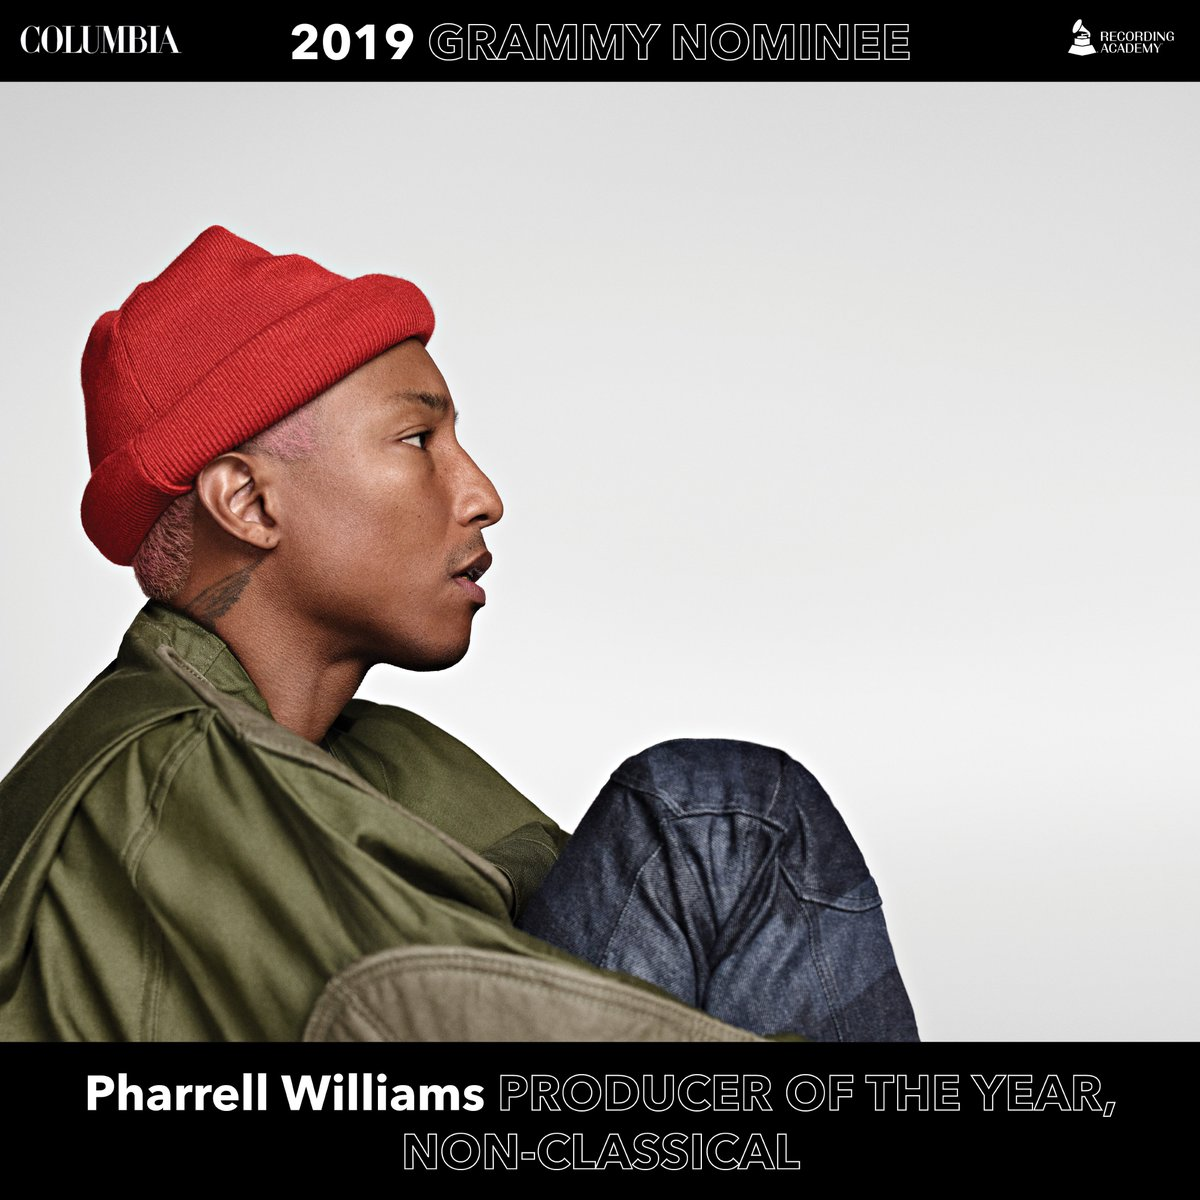 Congratulations to @Pharrell on his #Grammy nomination for Producer Of The Year, Non-Classical! #GRAMMYs